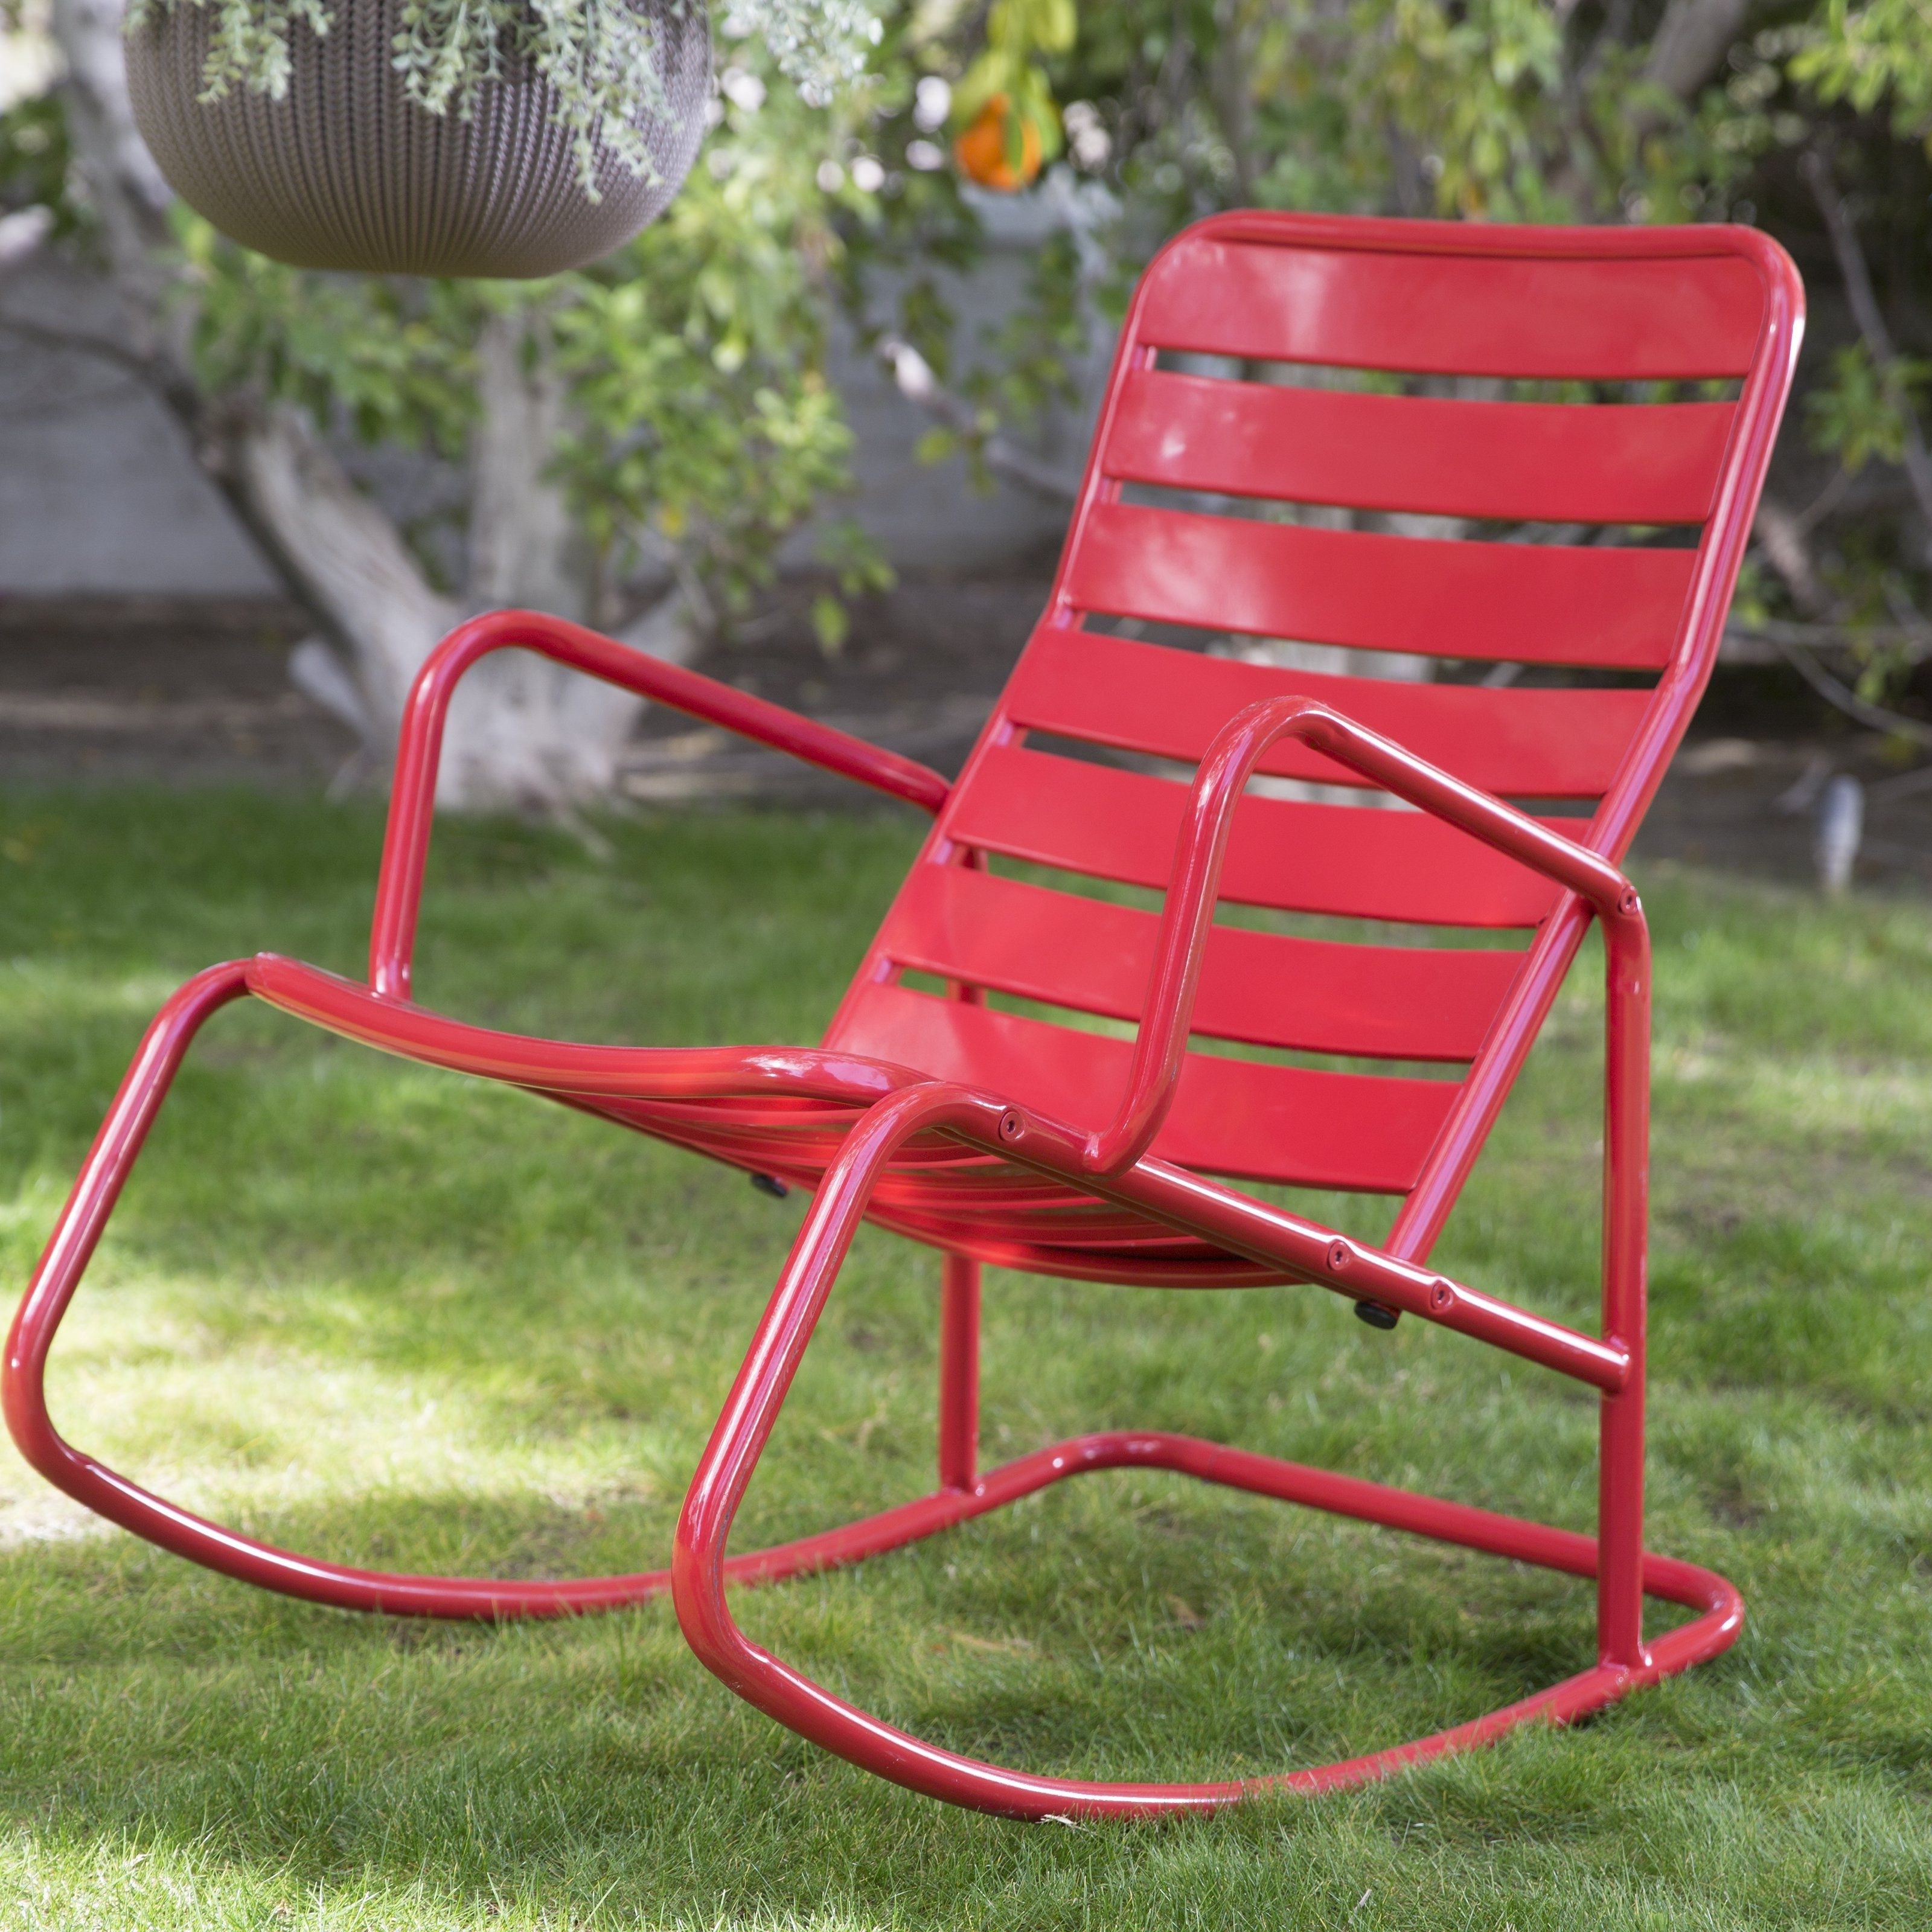 Belham Living Adley Outdoor Metal Slat Rocking Chair – Contemporary For Fashionable Patio Metal Rocking Chairs (View 3 of 15)